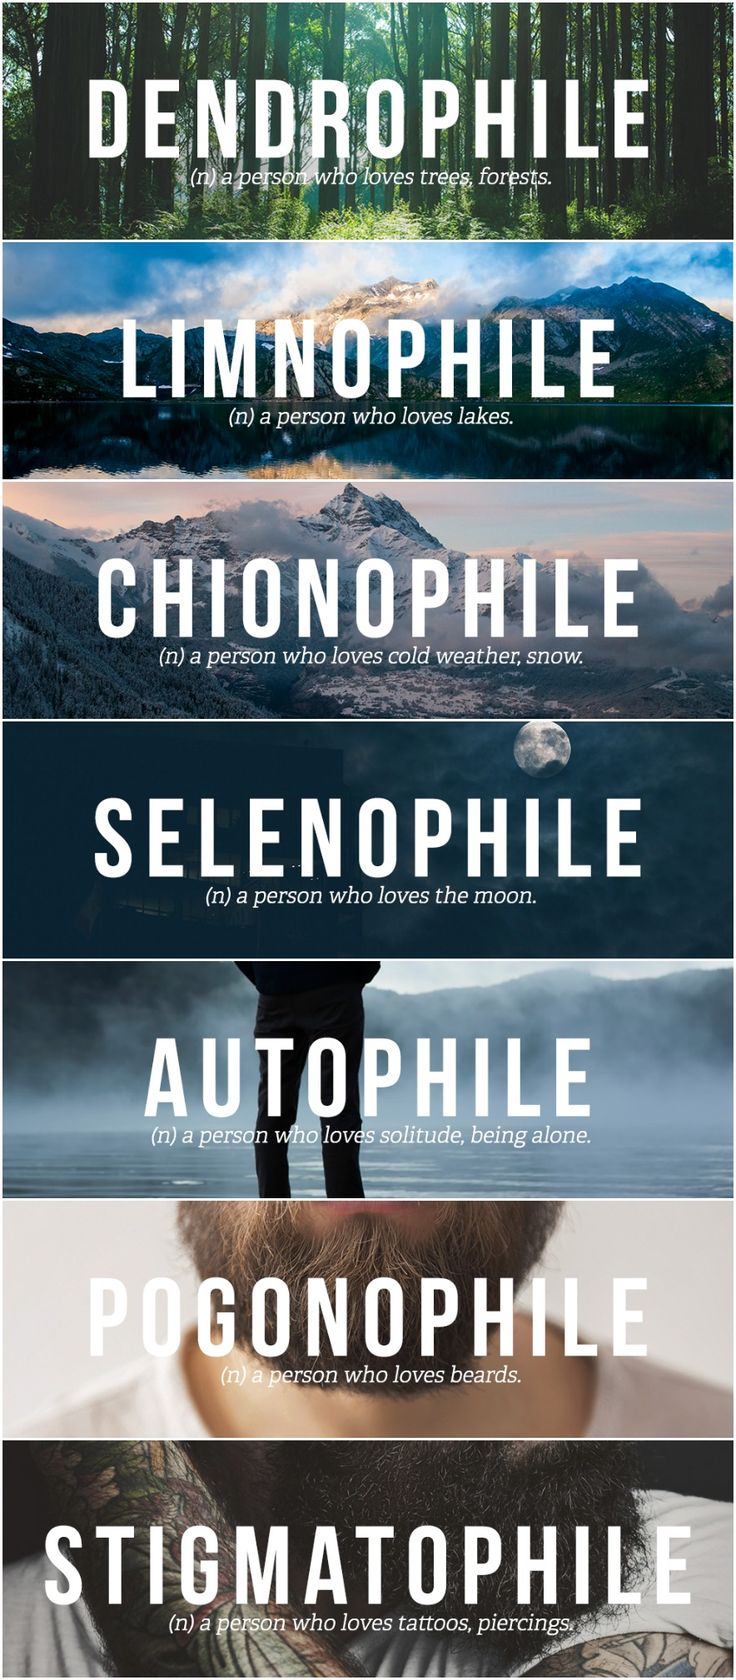 Im A Dendrophile, Limnophile, Chionophile, Selenophile -8757